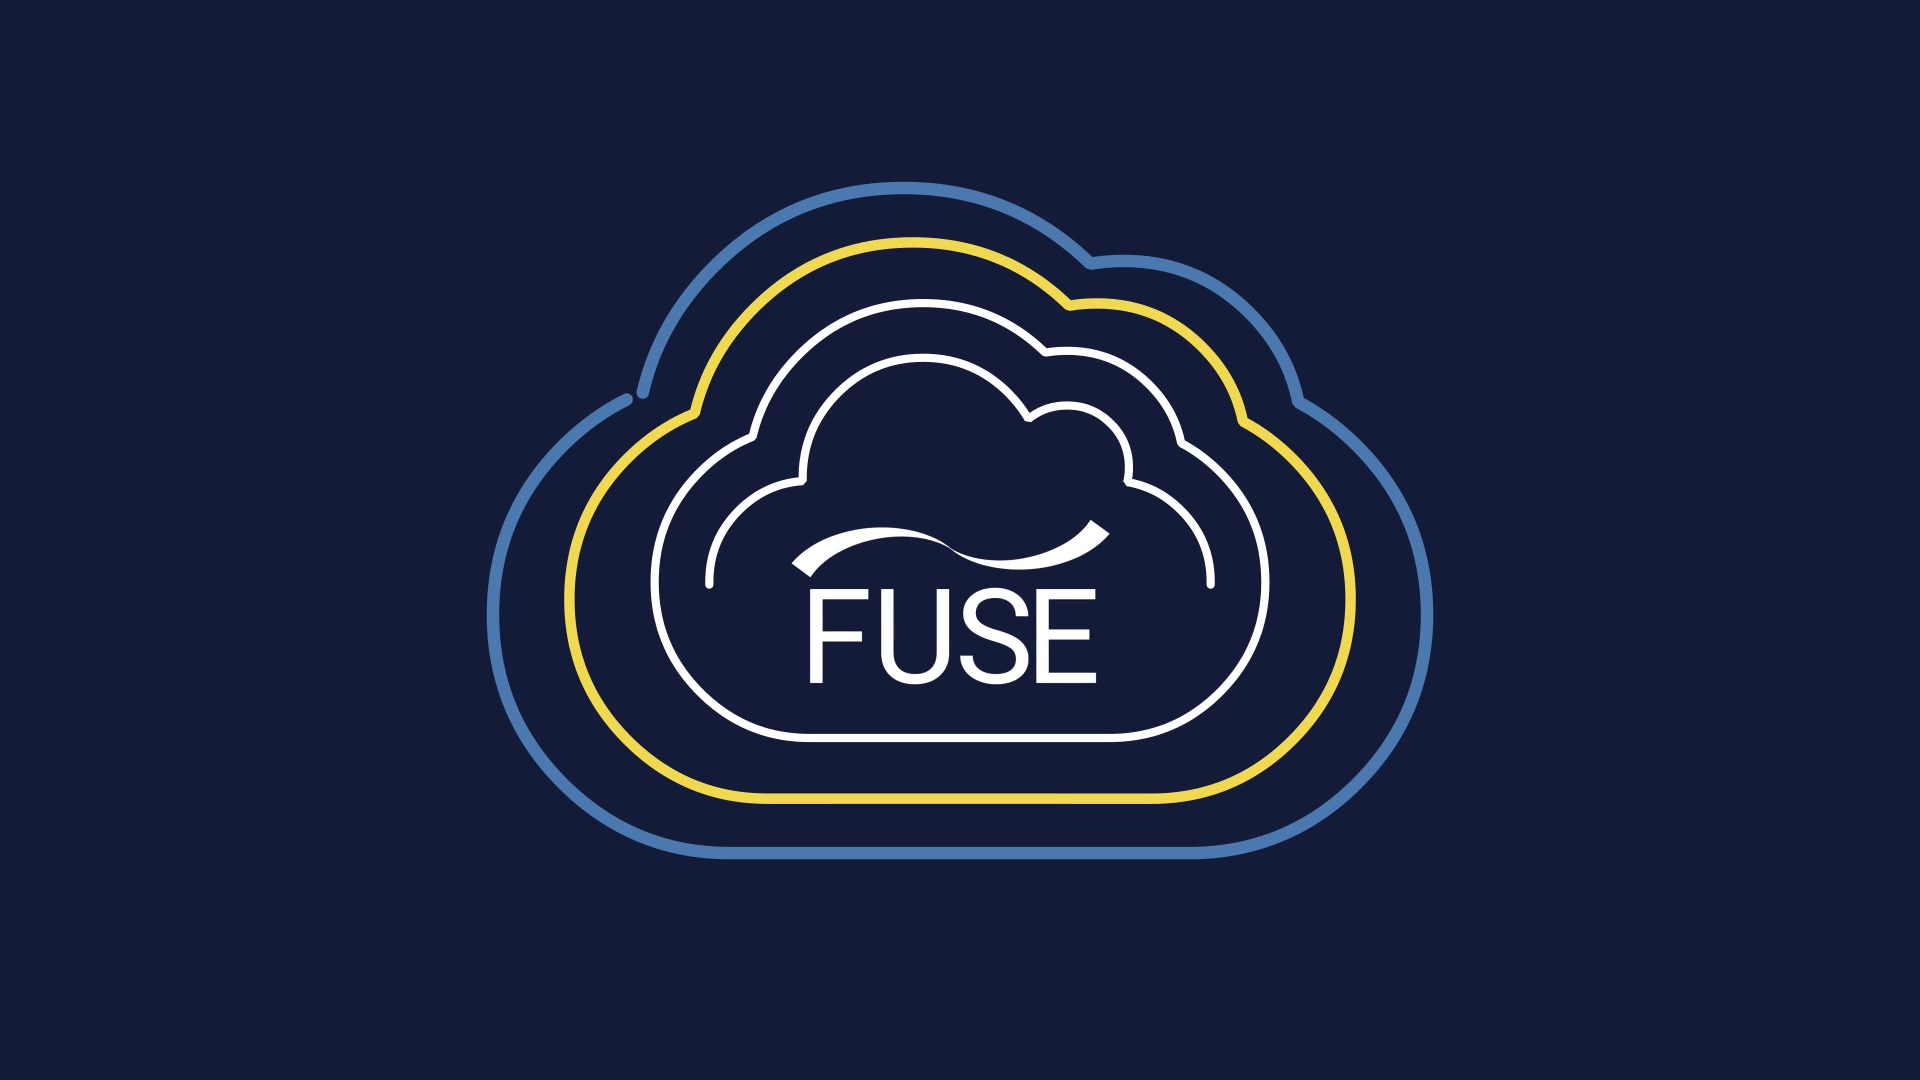 FUSE #5 Suppliers